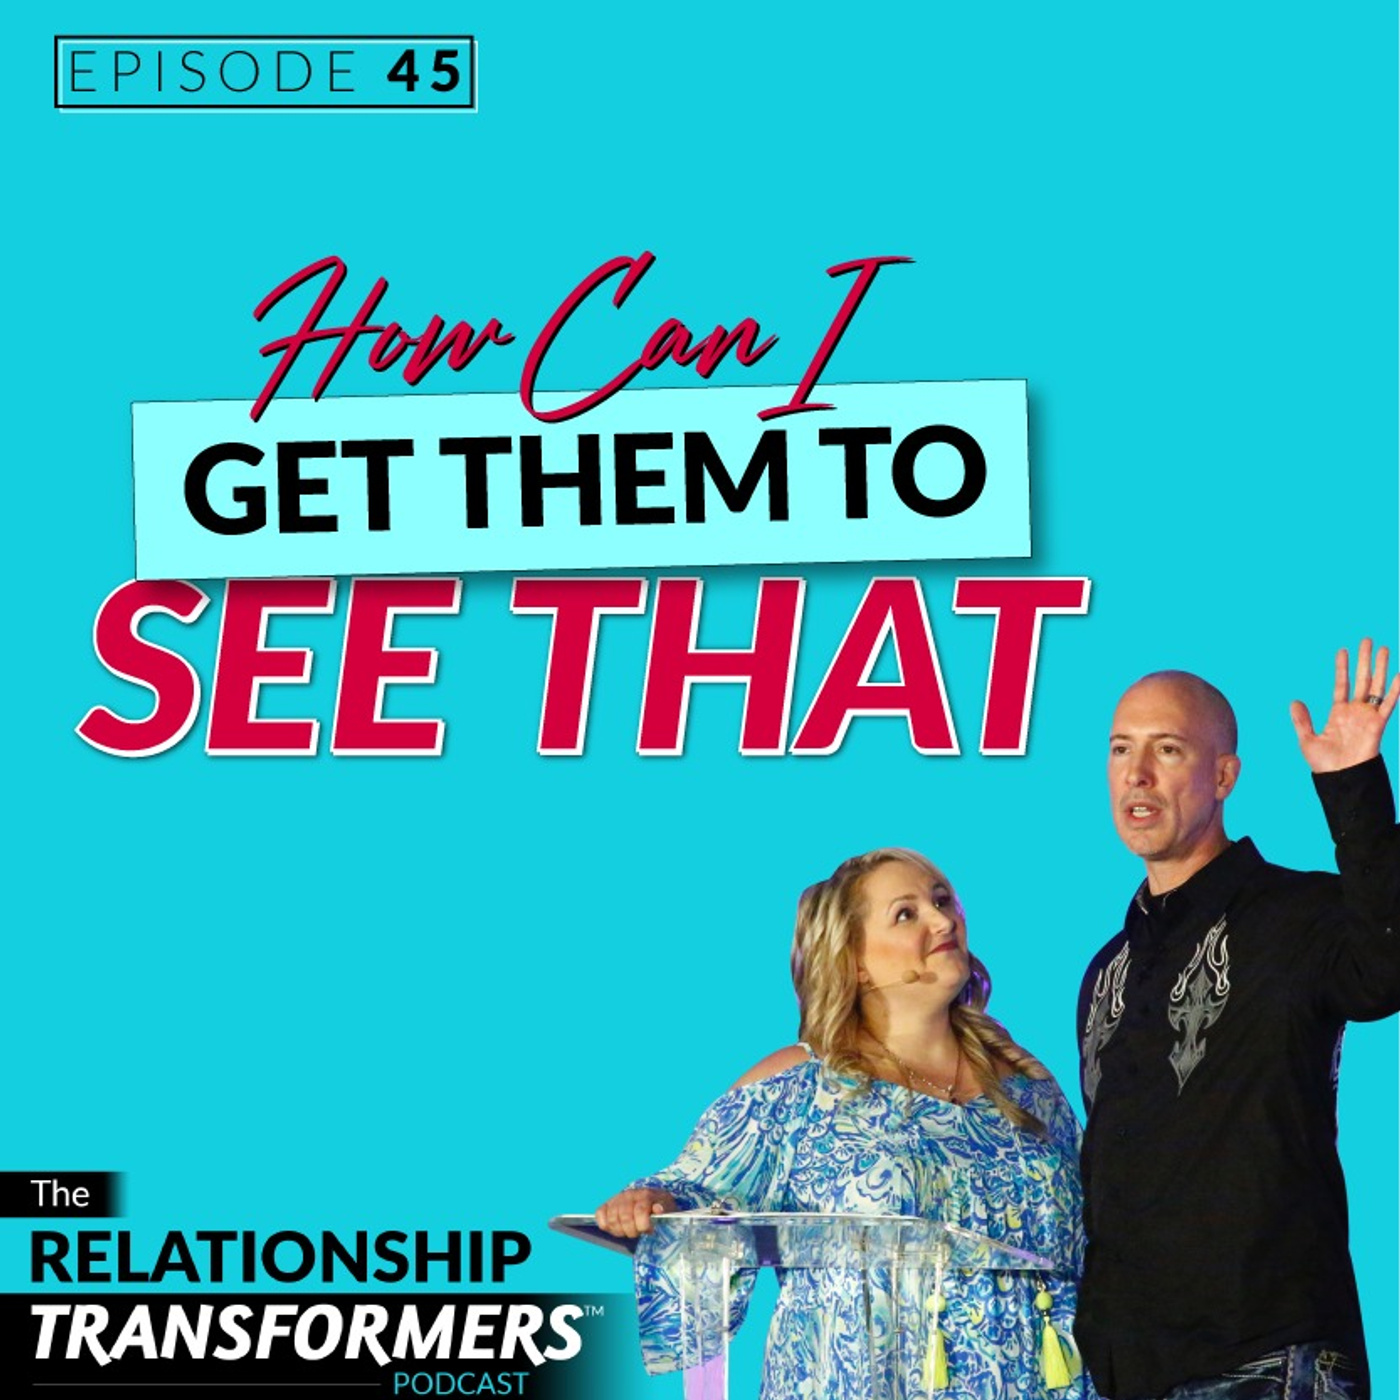 Relationship Transformers - 45: How Can I Get Them To See That….